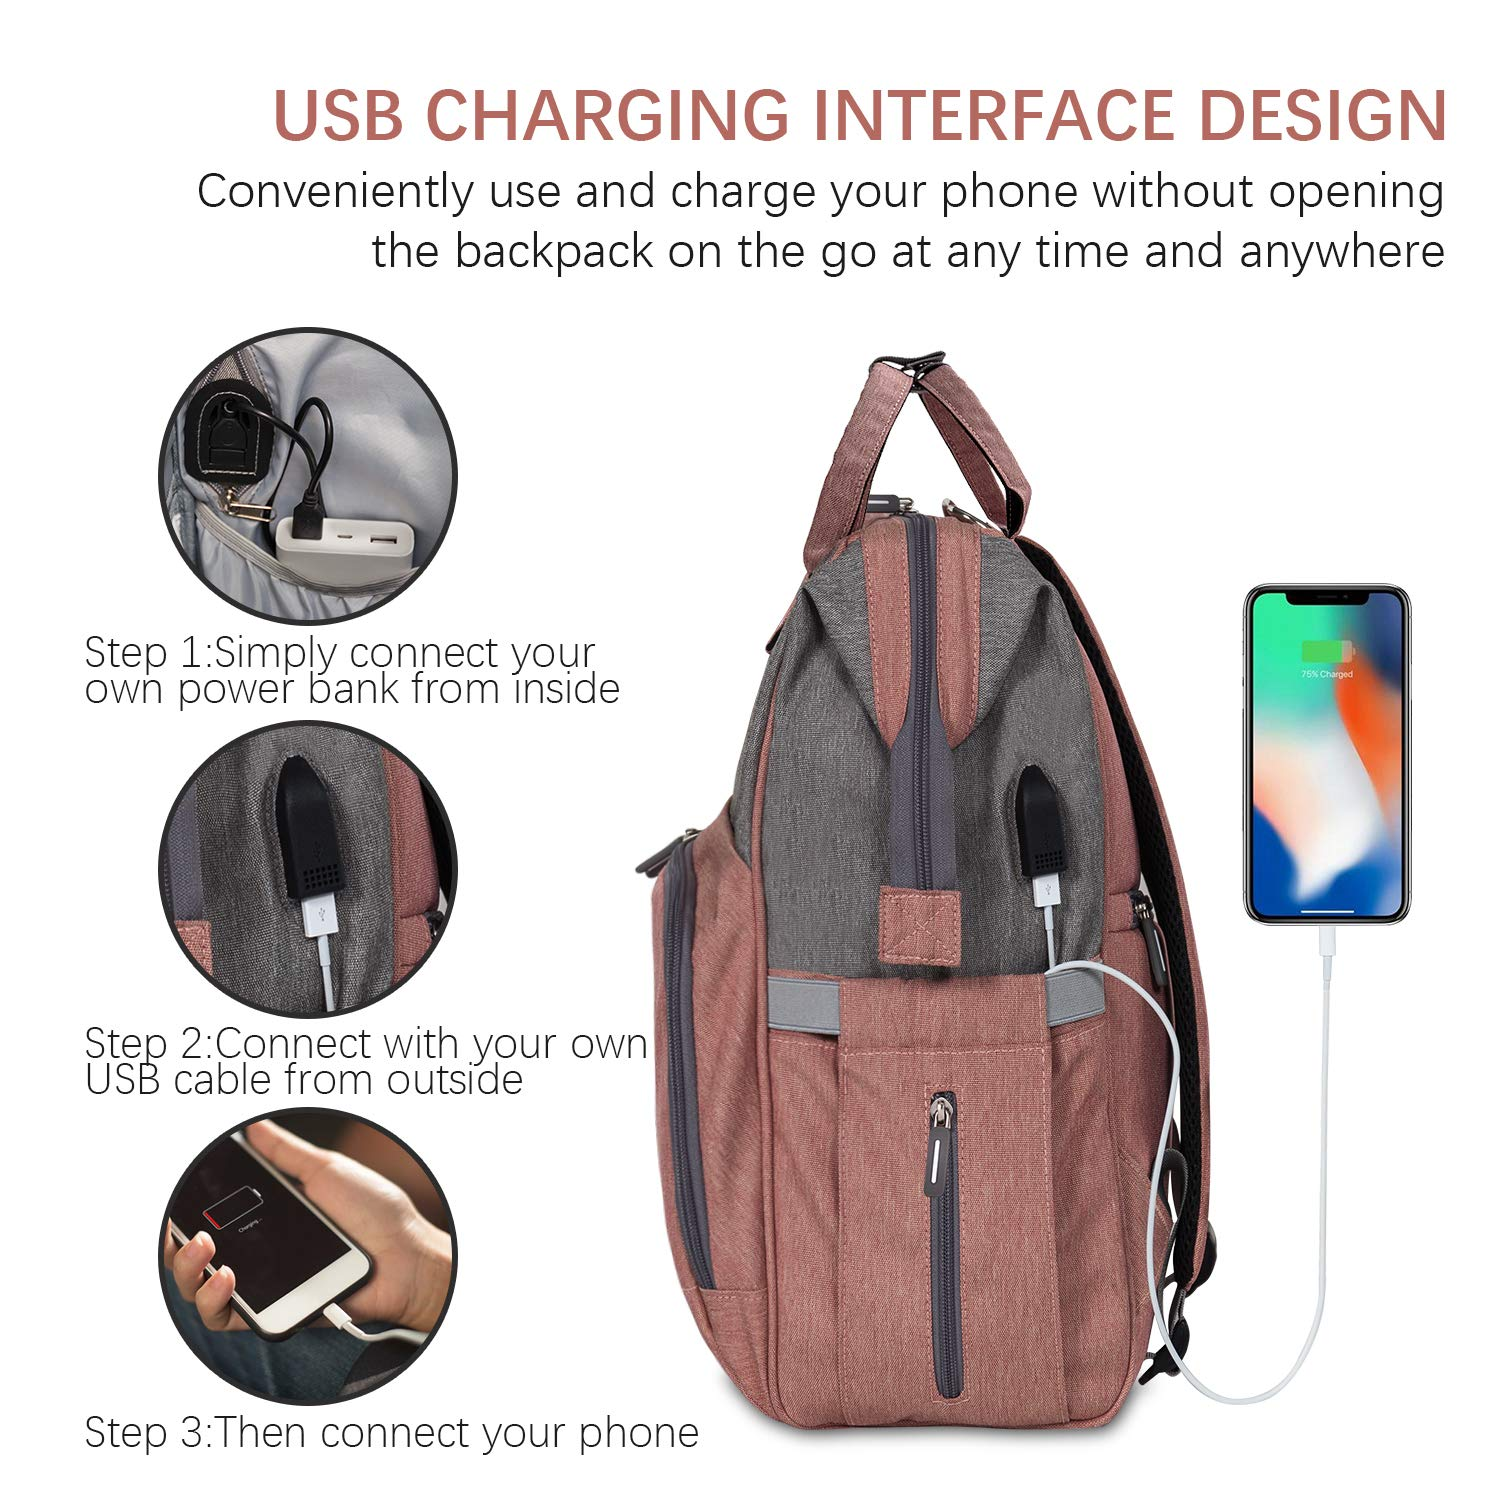 Diaper Bag Backpack Nappy Bag Upsimples Baby Bags for Mom Maternity Diaper Bag with USB Charging Port Stroller Straps Thermal Pockets Wide Shoulder Straps Water Resistant  Pink by upsimples (Image #2)